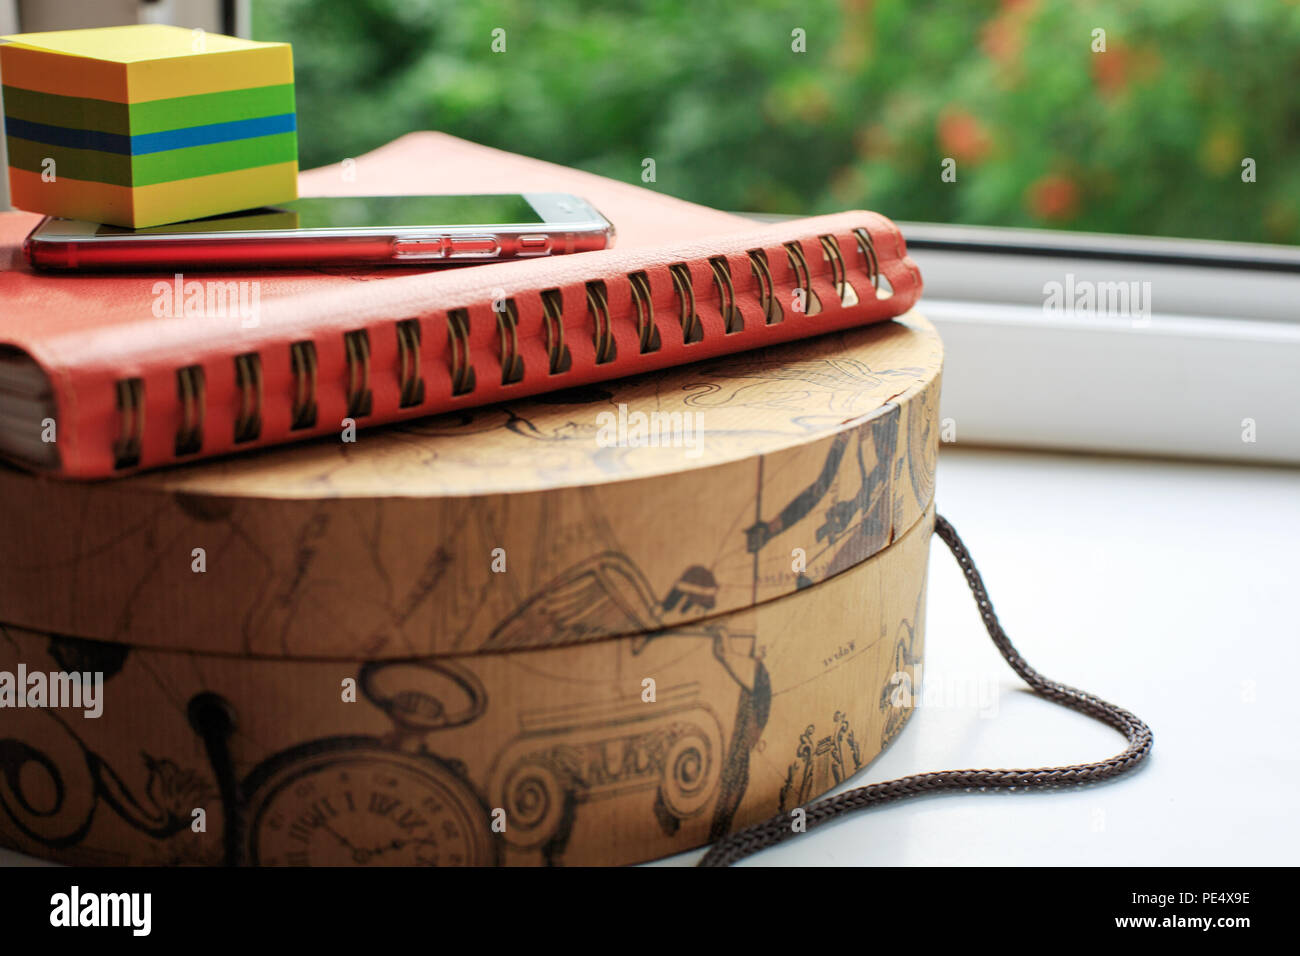 Diary and mobile phone on round carton box. Business concept - Stock Image